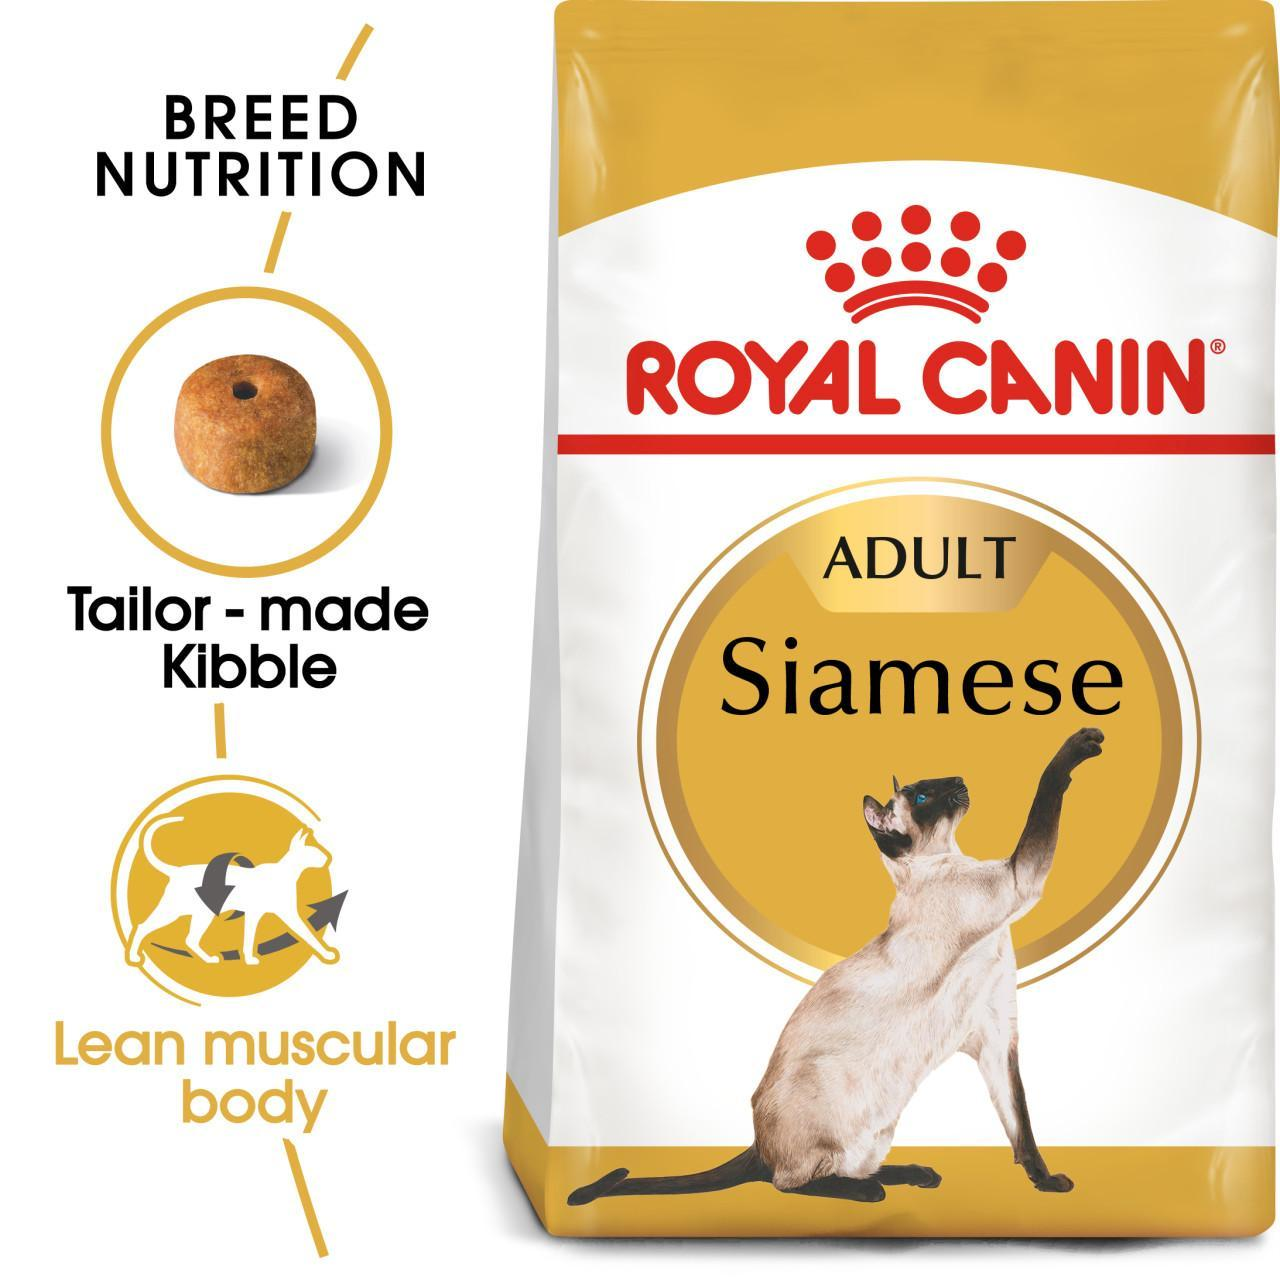 An image of Royal Canin Feline Siamese